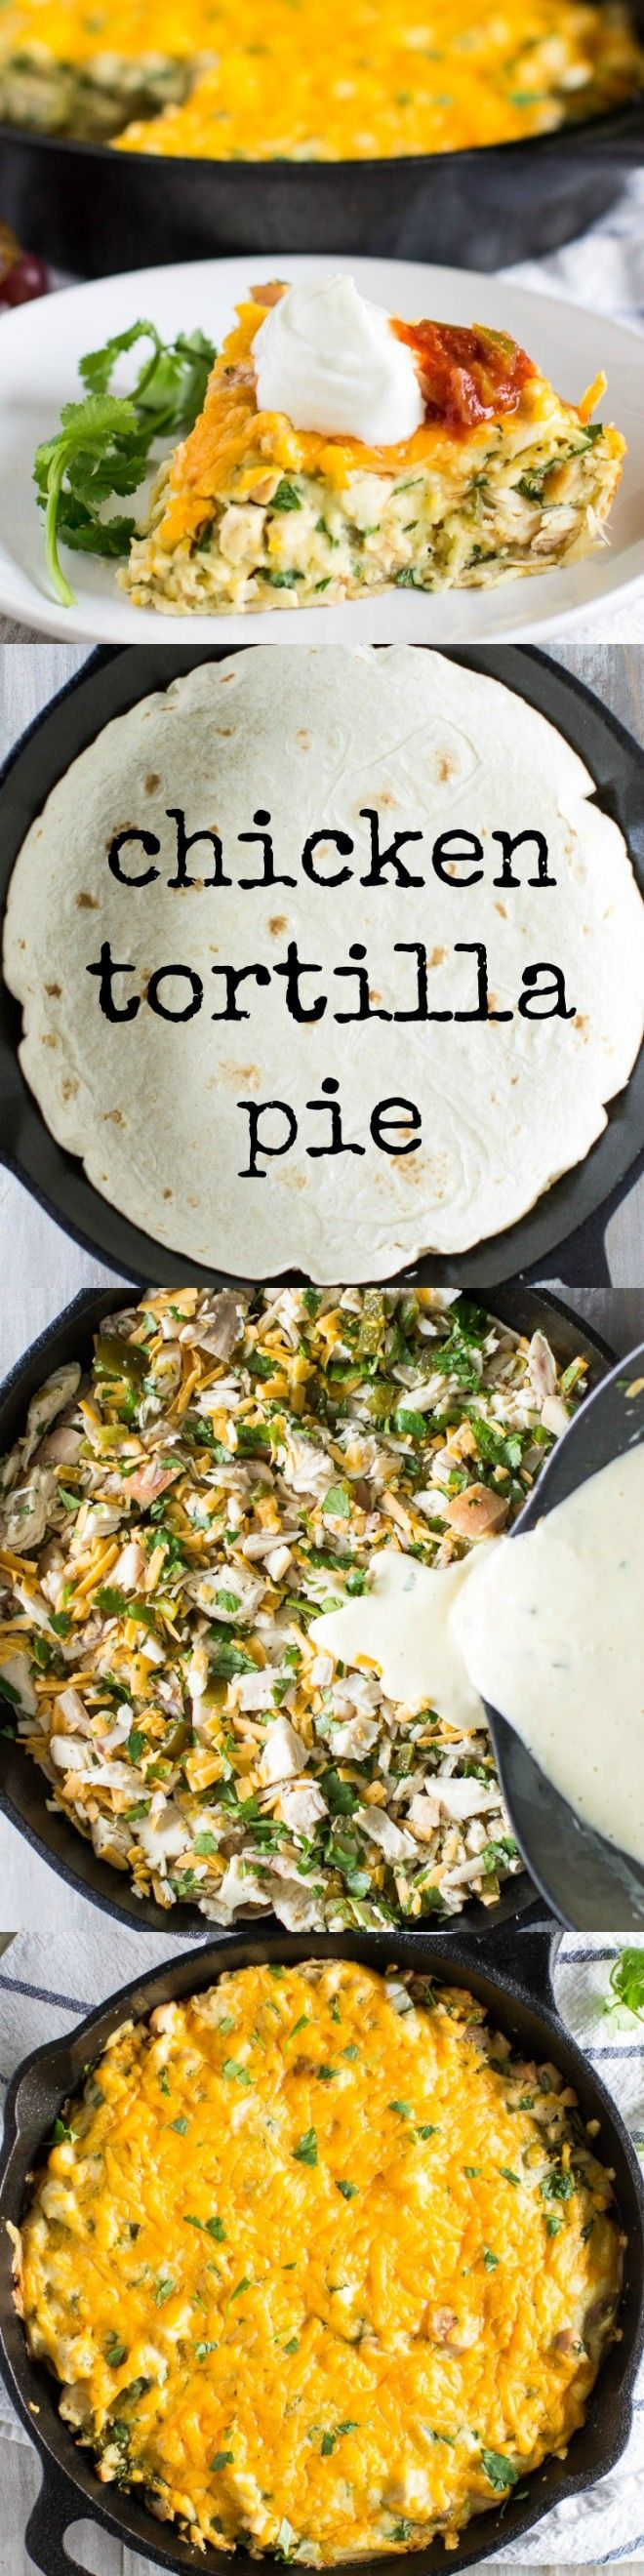 This Chicken Tortilla Pie has the easiest crust ever topped with a cheesy, flavorful filling. Best of all, it's on the table in 30 minutes or less.